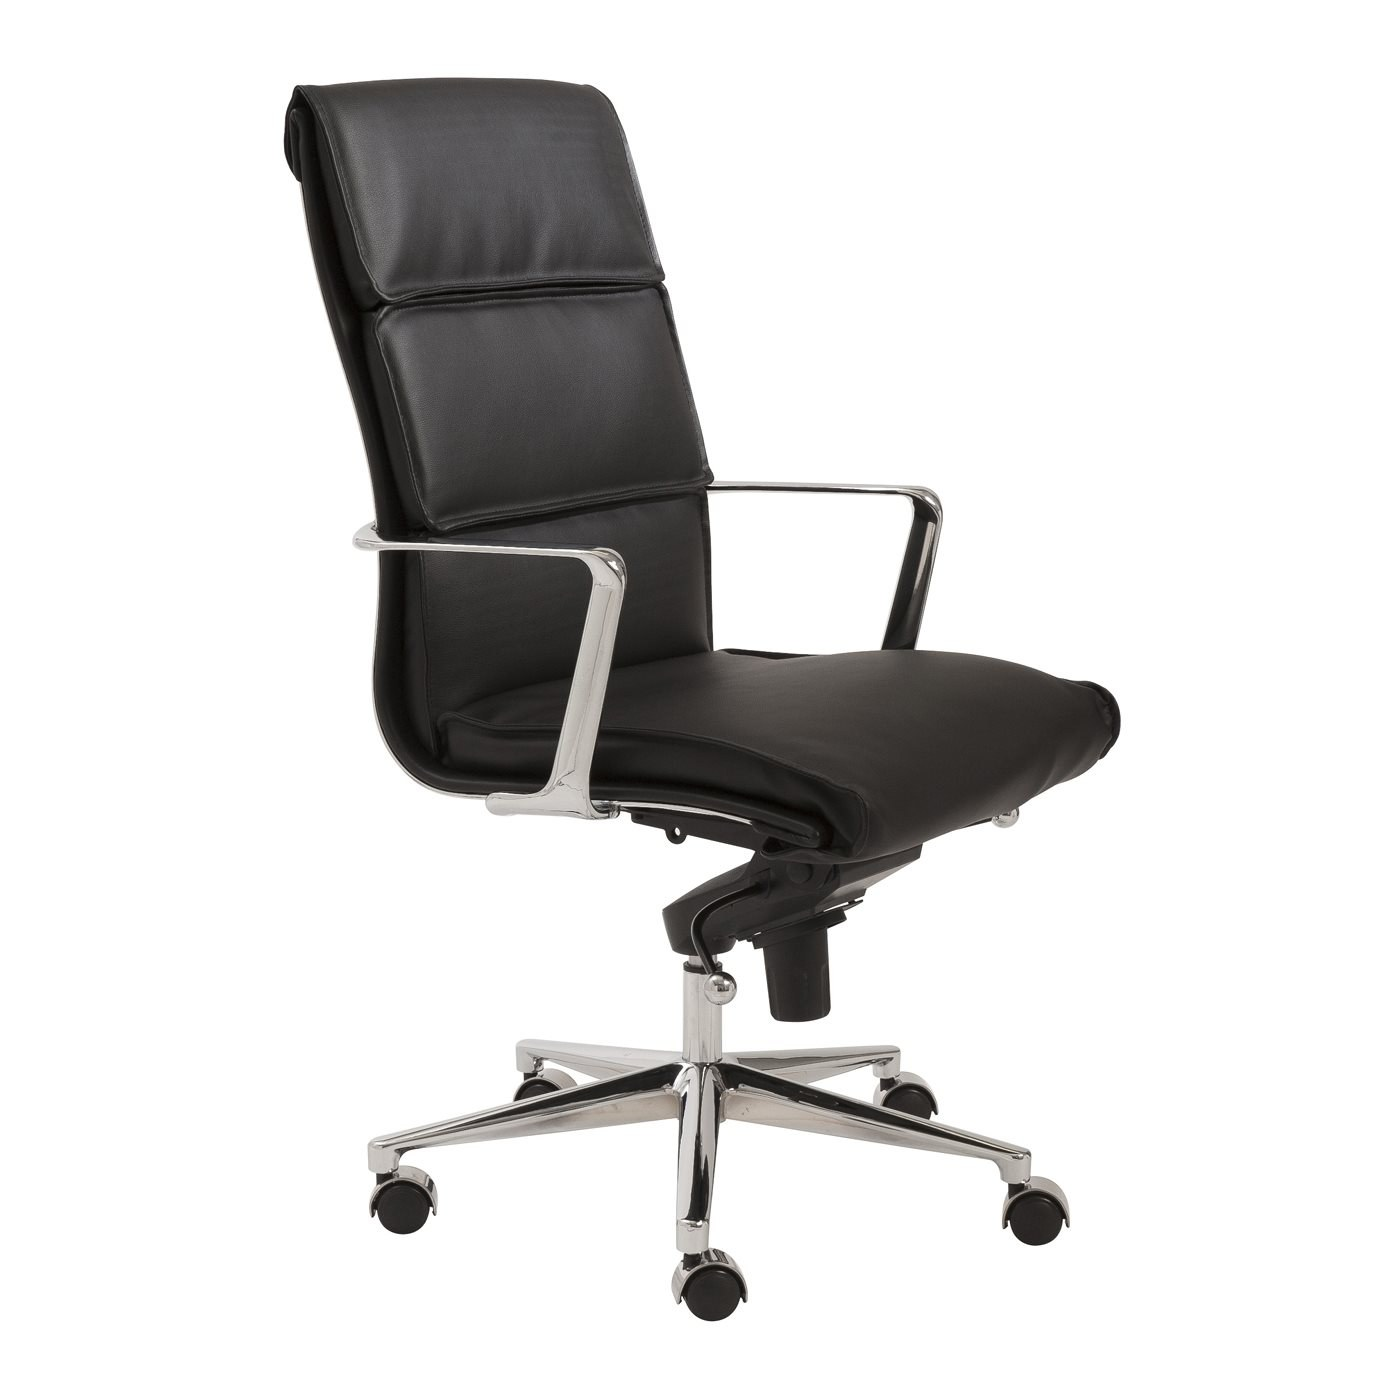 Office Chair Styles Leif High Back Office Chair With Black Leatherette